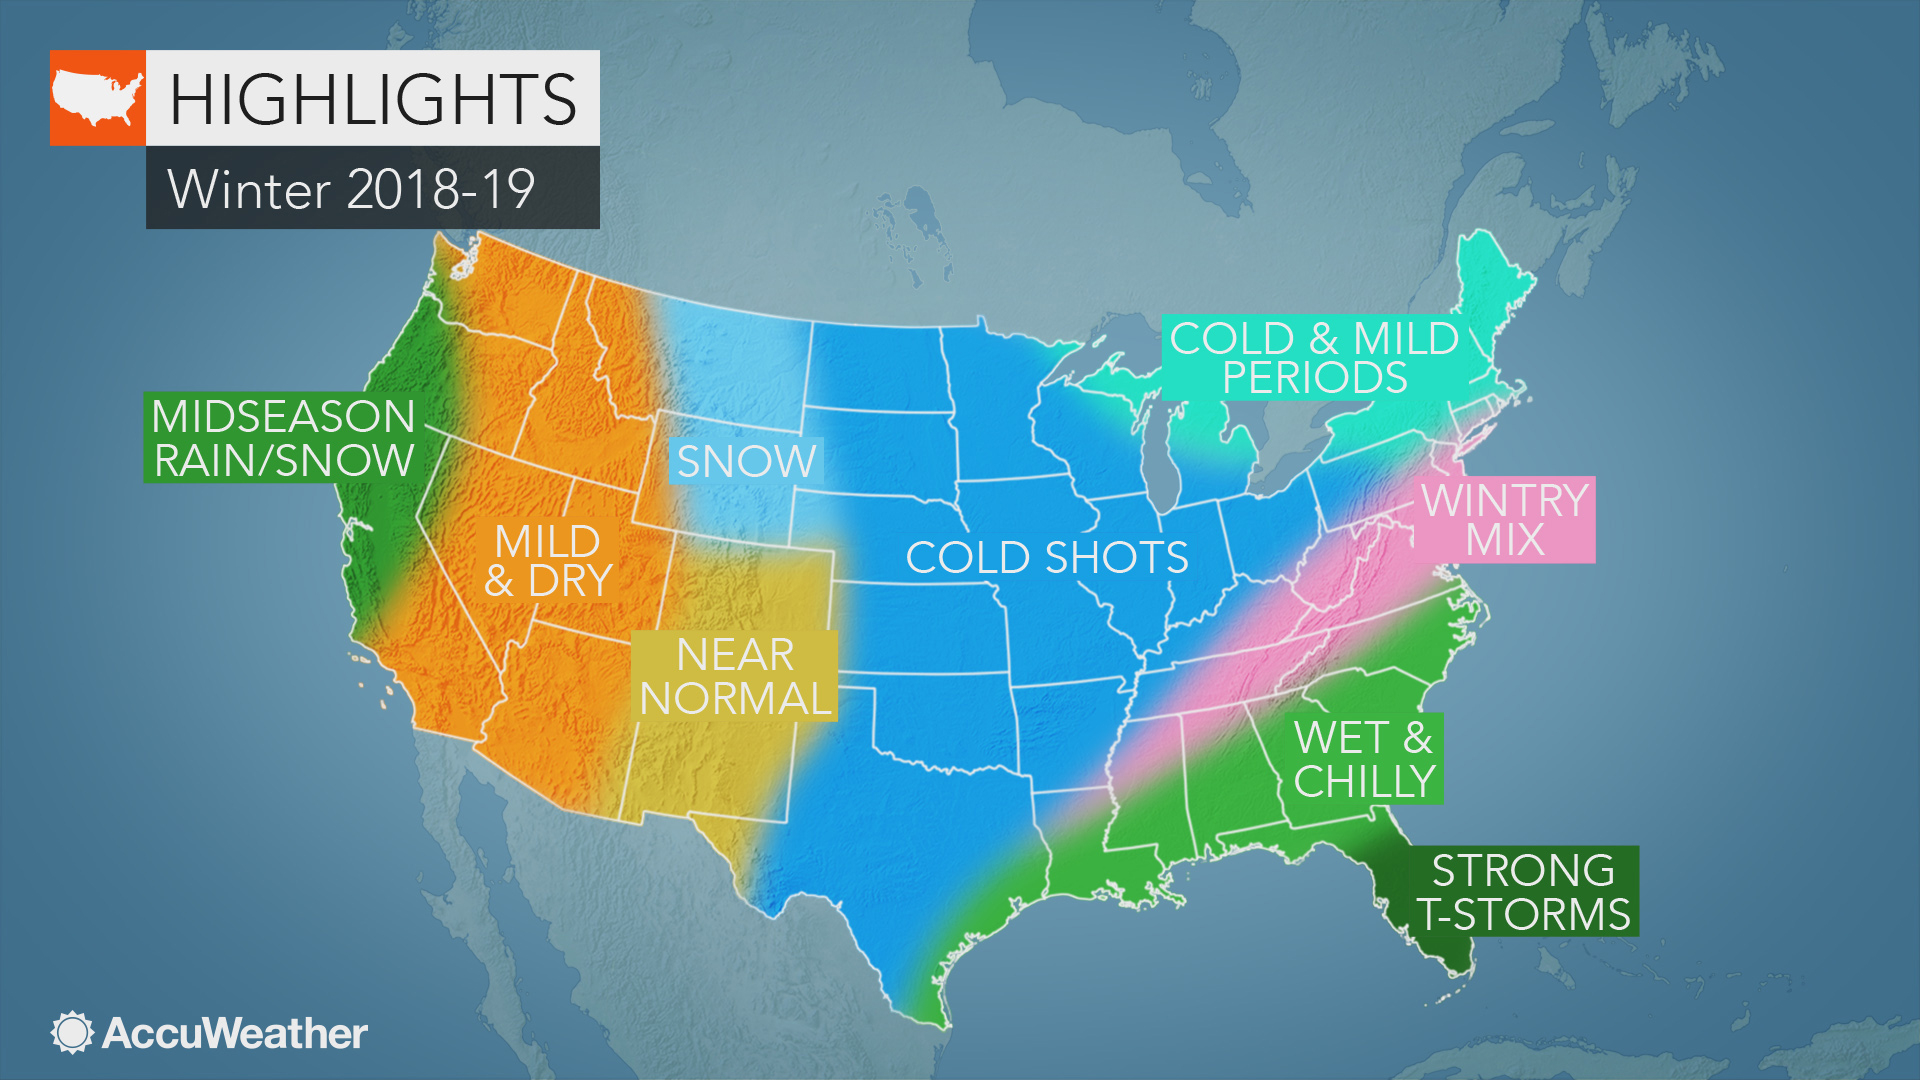 Accuweather's Us Winter Forecast For 2018-2019 Season - Florida Weather Forecast Map